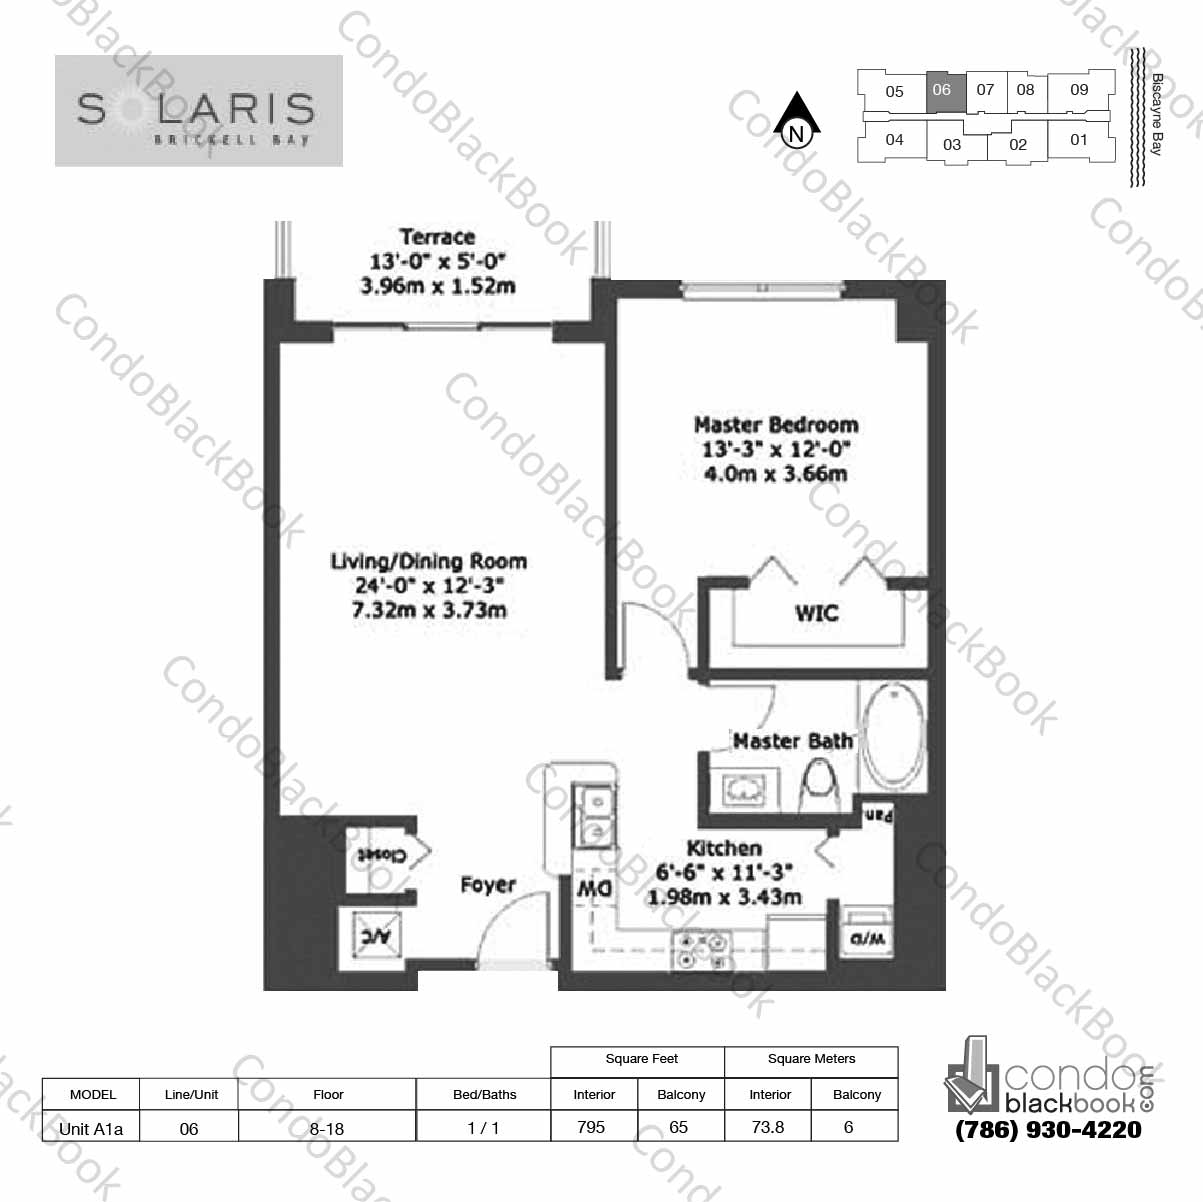 Floor plan for Solaris at Brickell Brickell Miami, model Unit A1a, line 06, 1 / 1 bedrooms, 795 sq ft